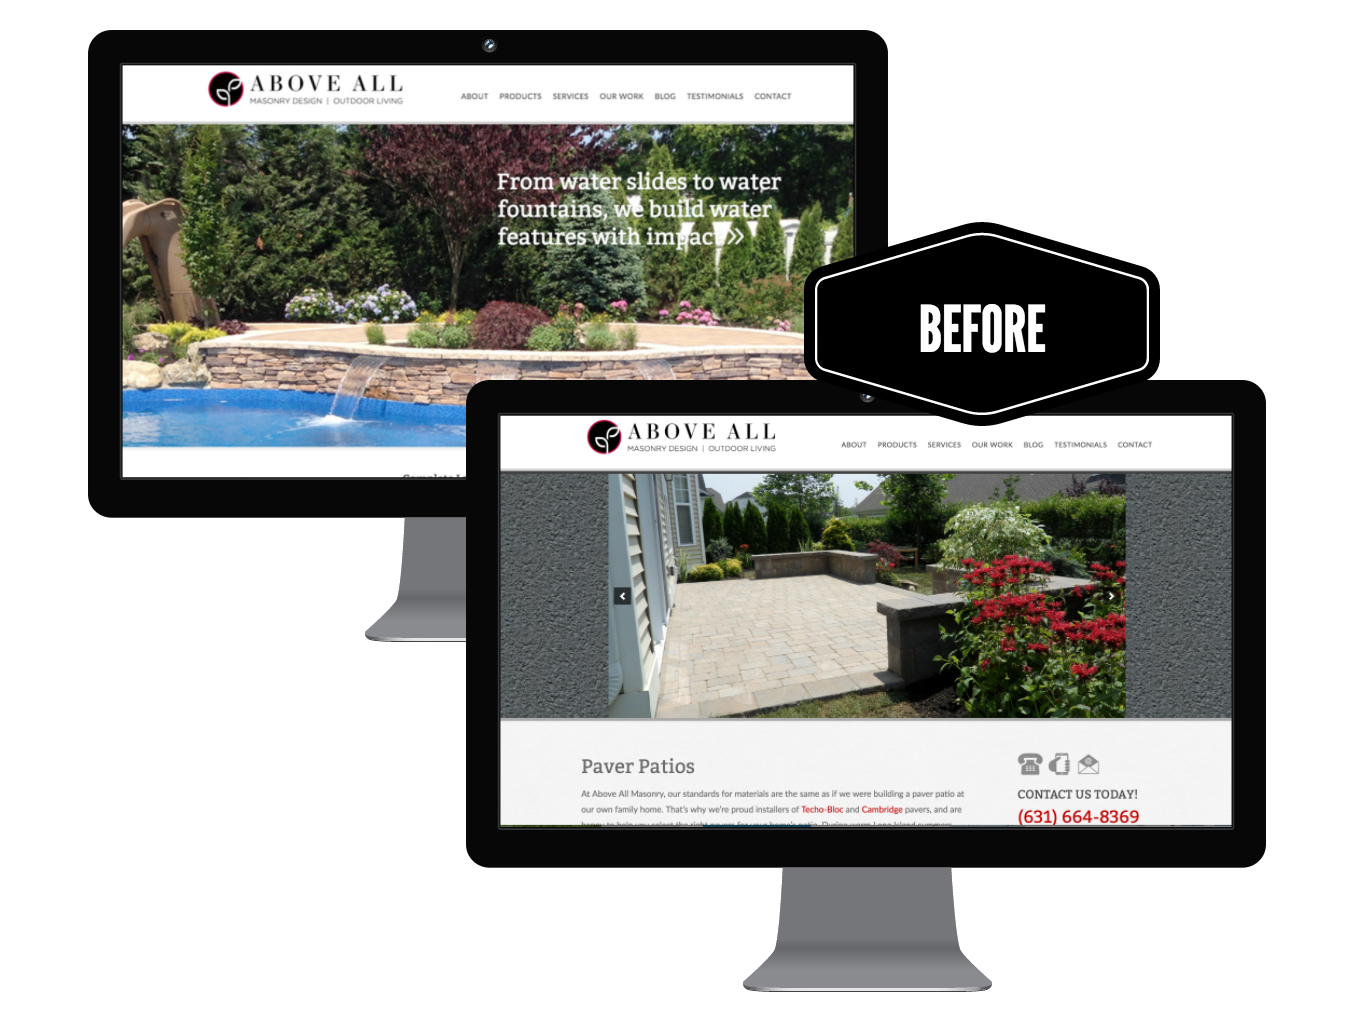 Case Study Website Design Monthly Content Marketing For Landscape Design Build In Long Island Ny Digital Marketing Agency Westchester Ny